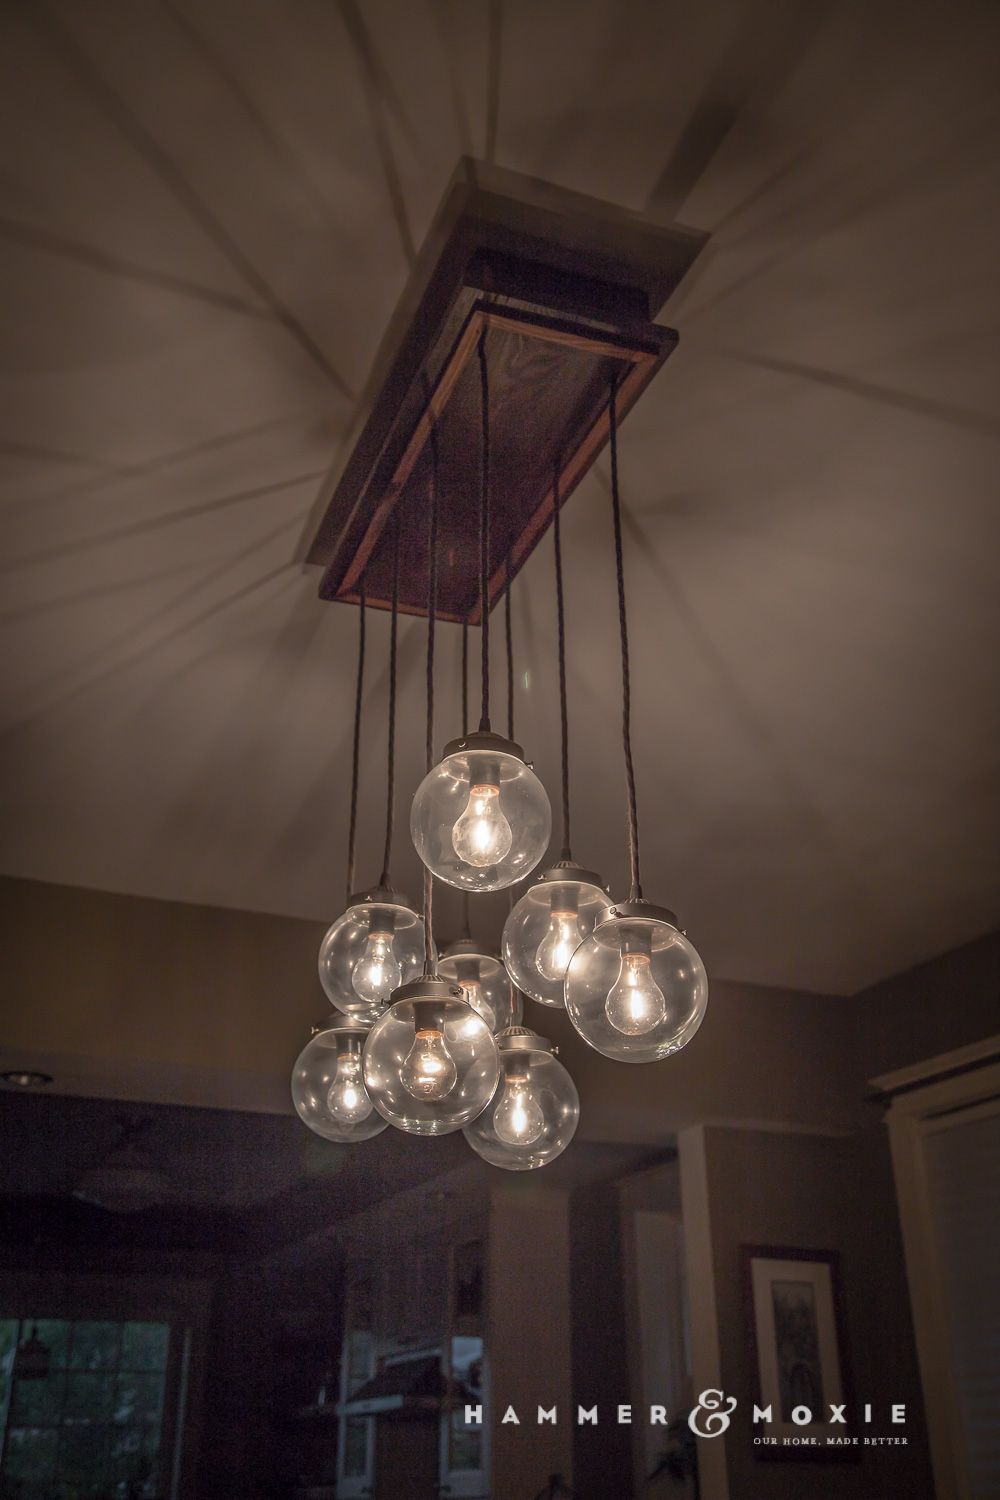 homemade chandelier with irregularly hung globes cotton covered wiring and a ceiling box made of reclaimed wood hammer moxie [ 1000 x 1500 Pixel ]